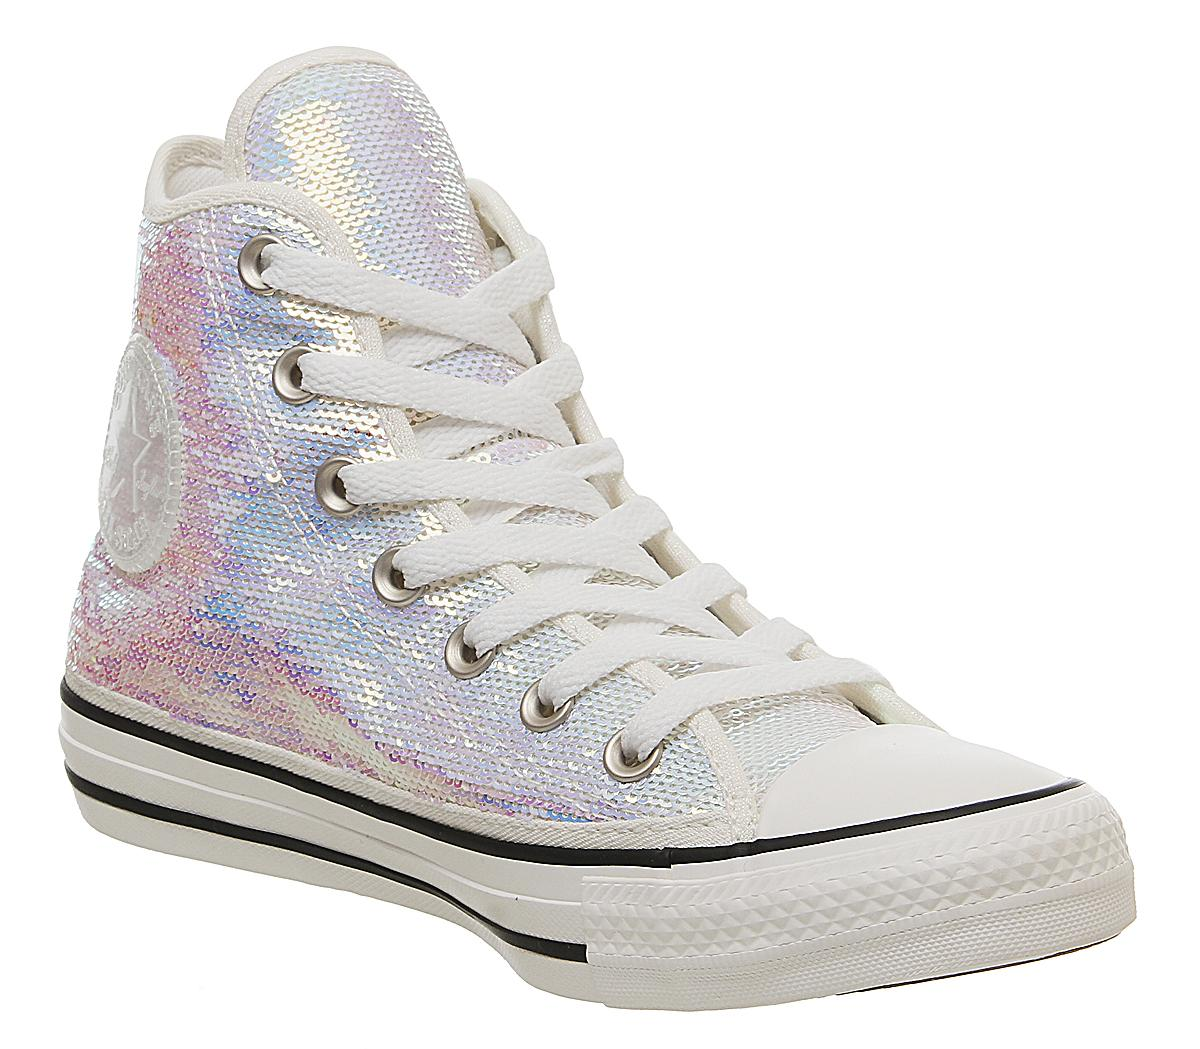 Converse All Star Hi W shoes silver